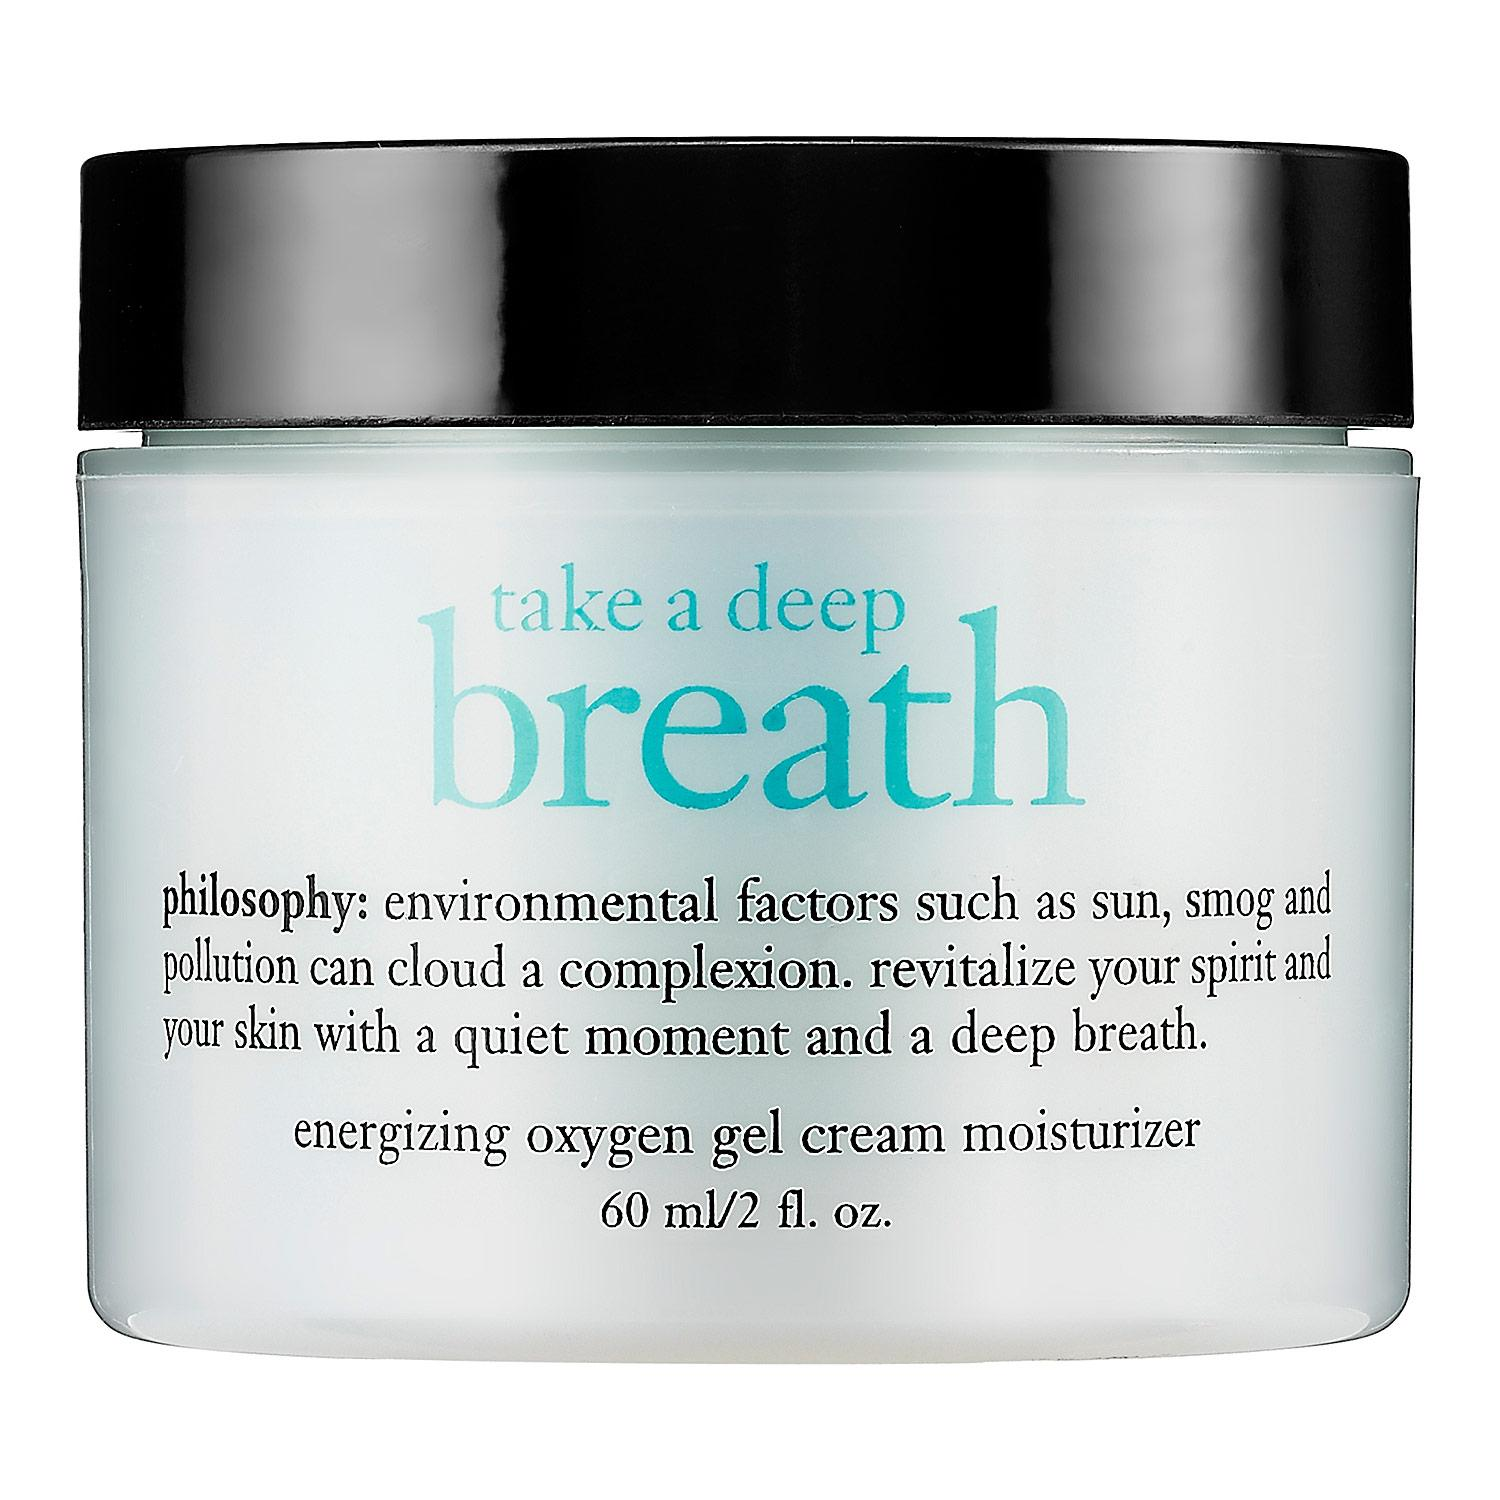 Take A Deep Breath Oil-Free Energizing Oxygen Gel Cream Moisturizer